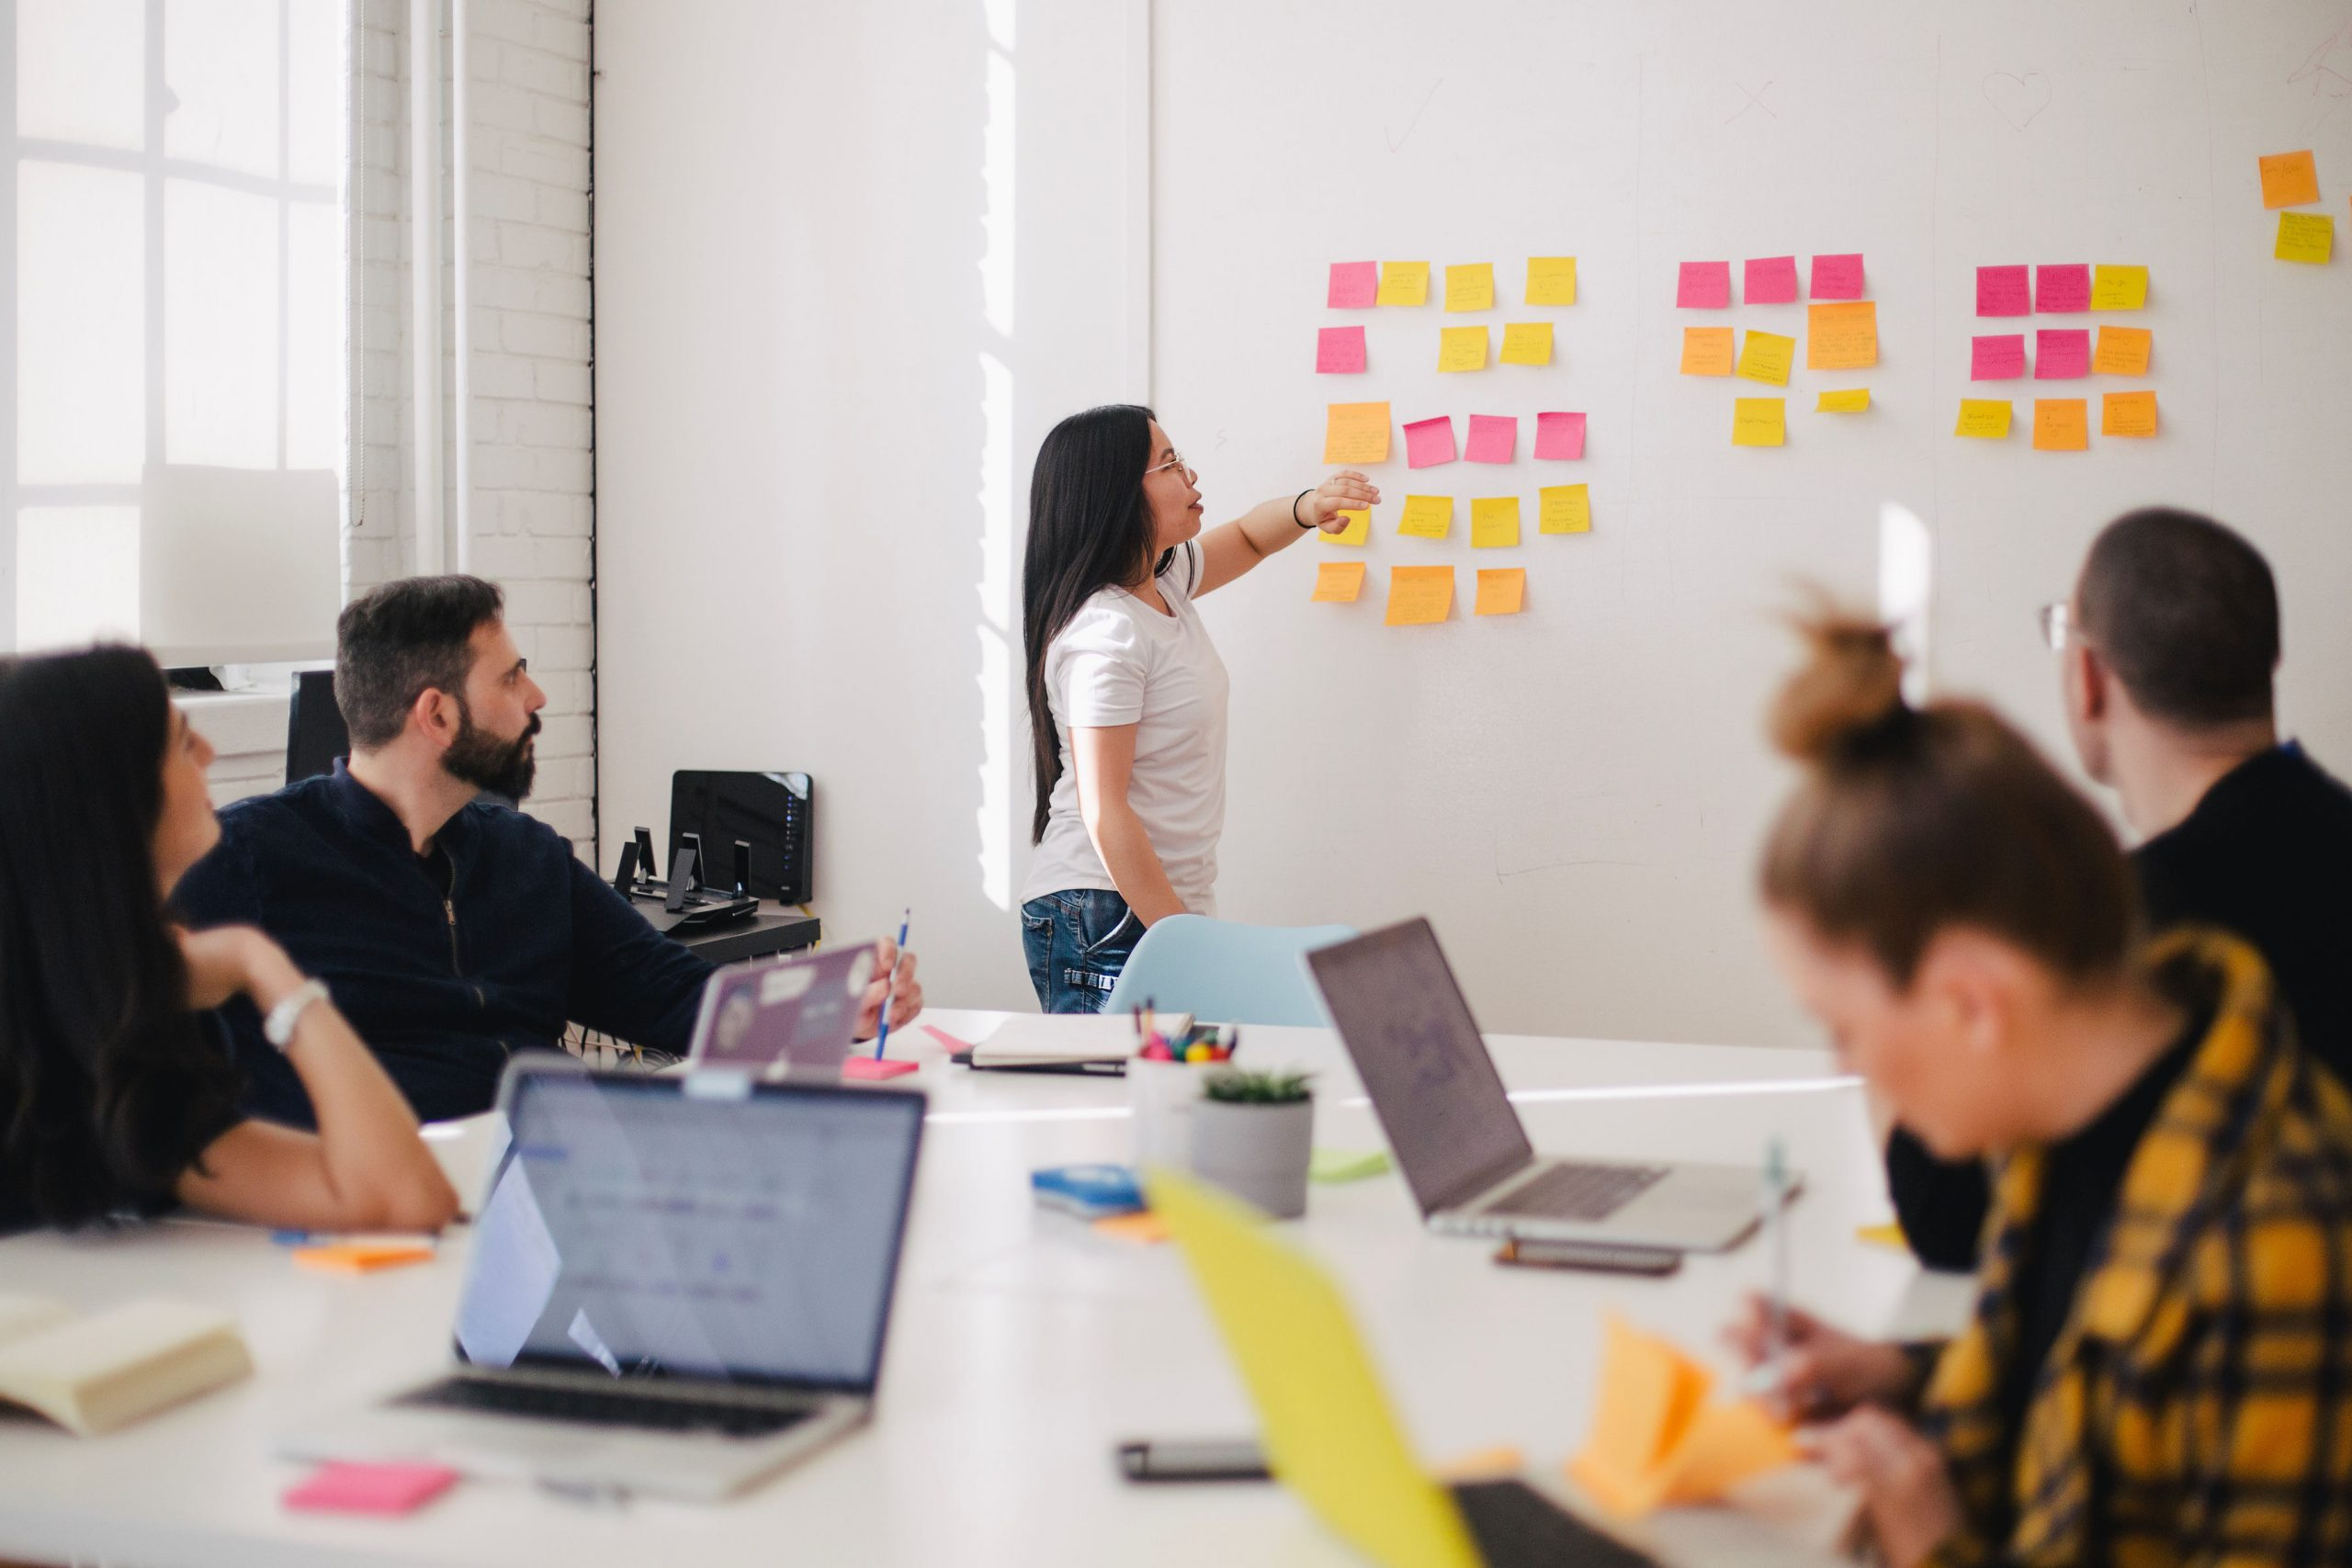 Foto por You X Ventures en Unsplash